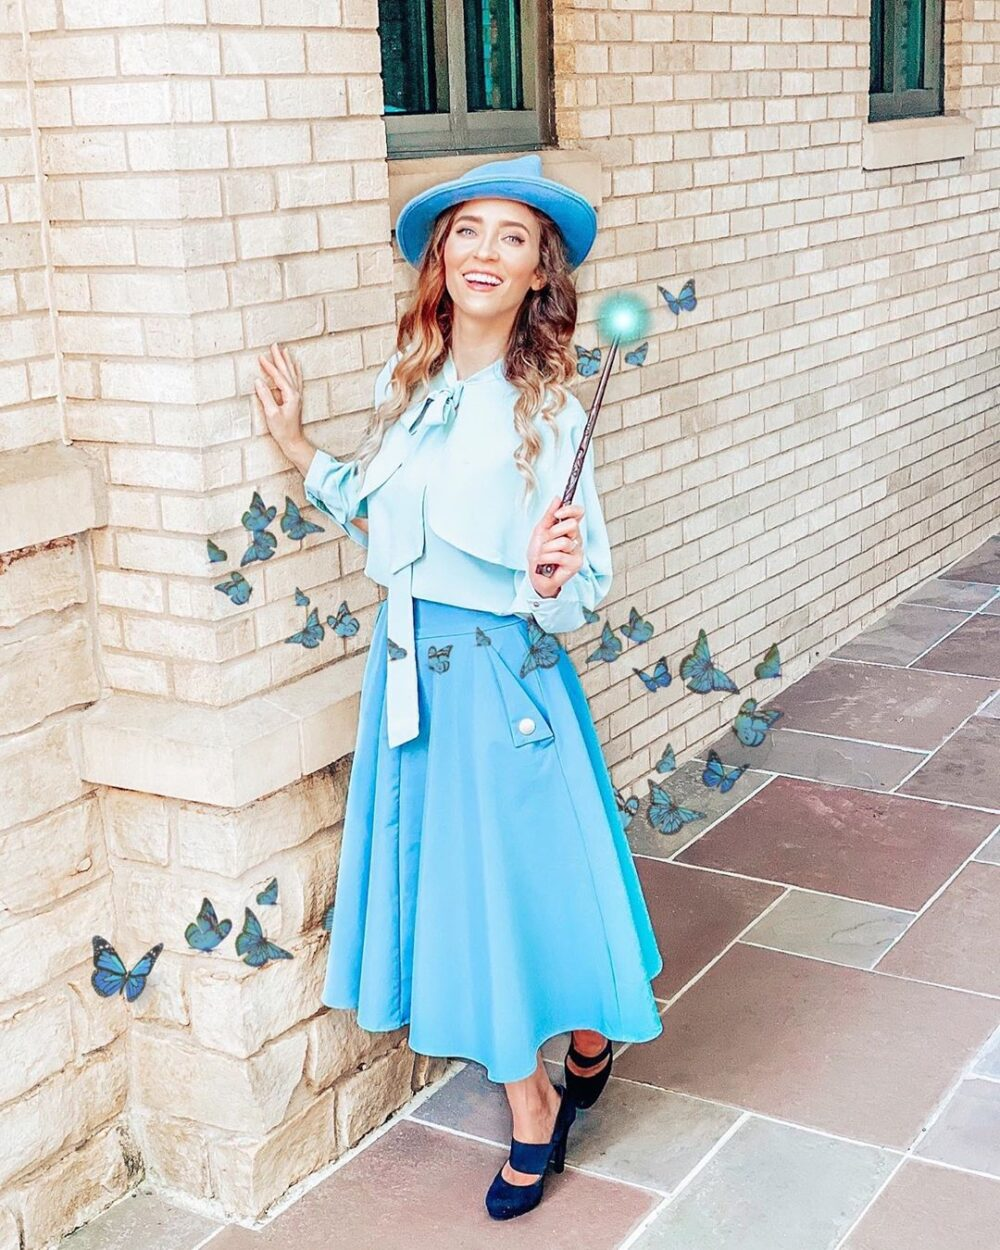 15 Pretty + Unique Costumes Ideas That We Love From Instagram